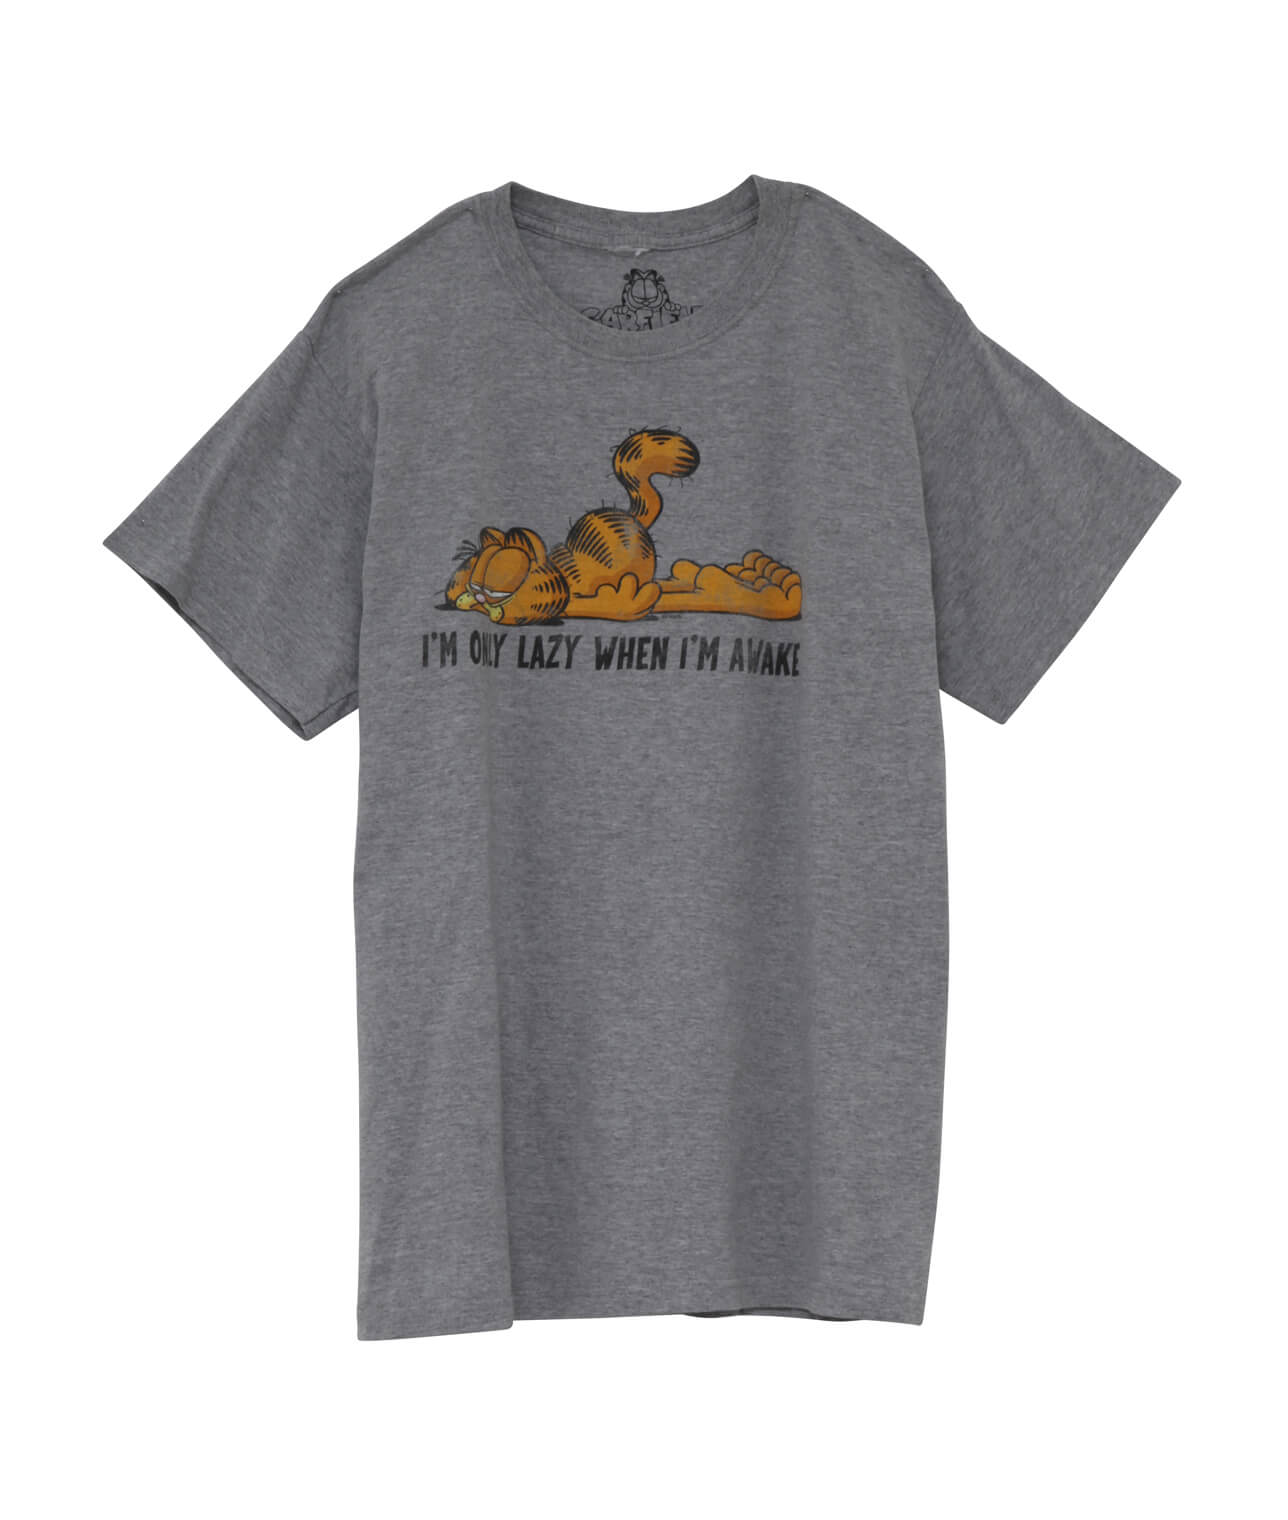 USED/GARFIELD Tシャツ 詳細画像 グレー 1